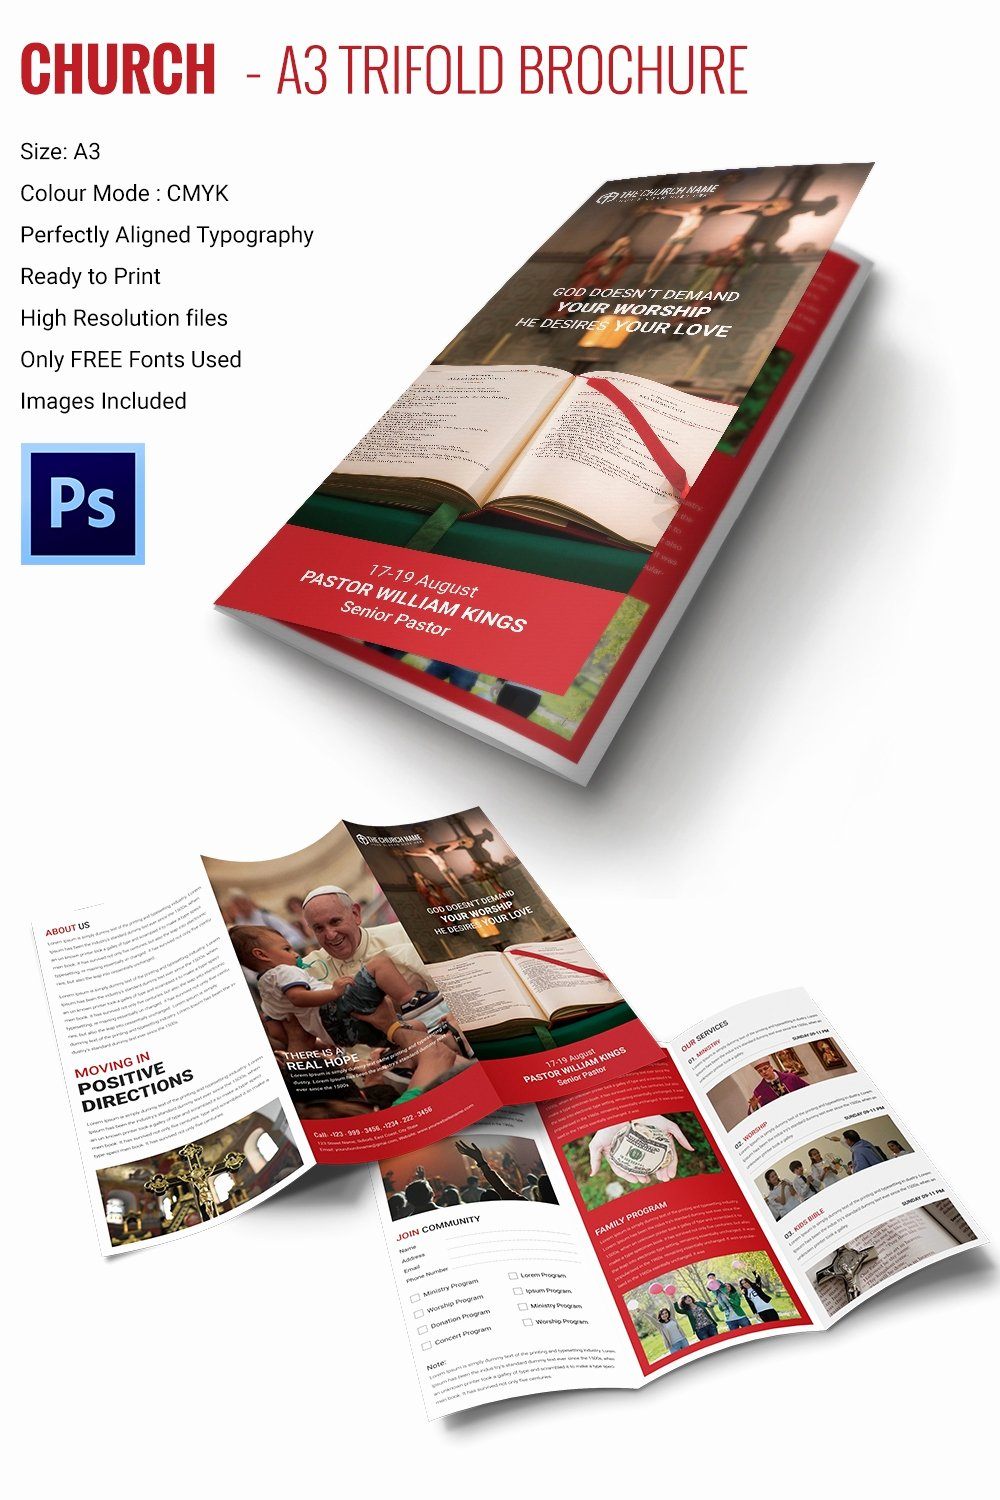 Free Trifold Brochure Template Beautiful 16 Popular Church Brochure Templates Ai Psd Docs